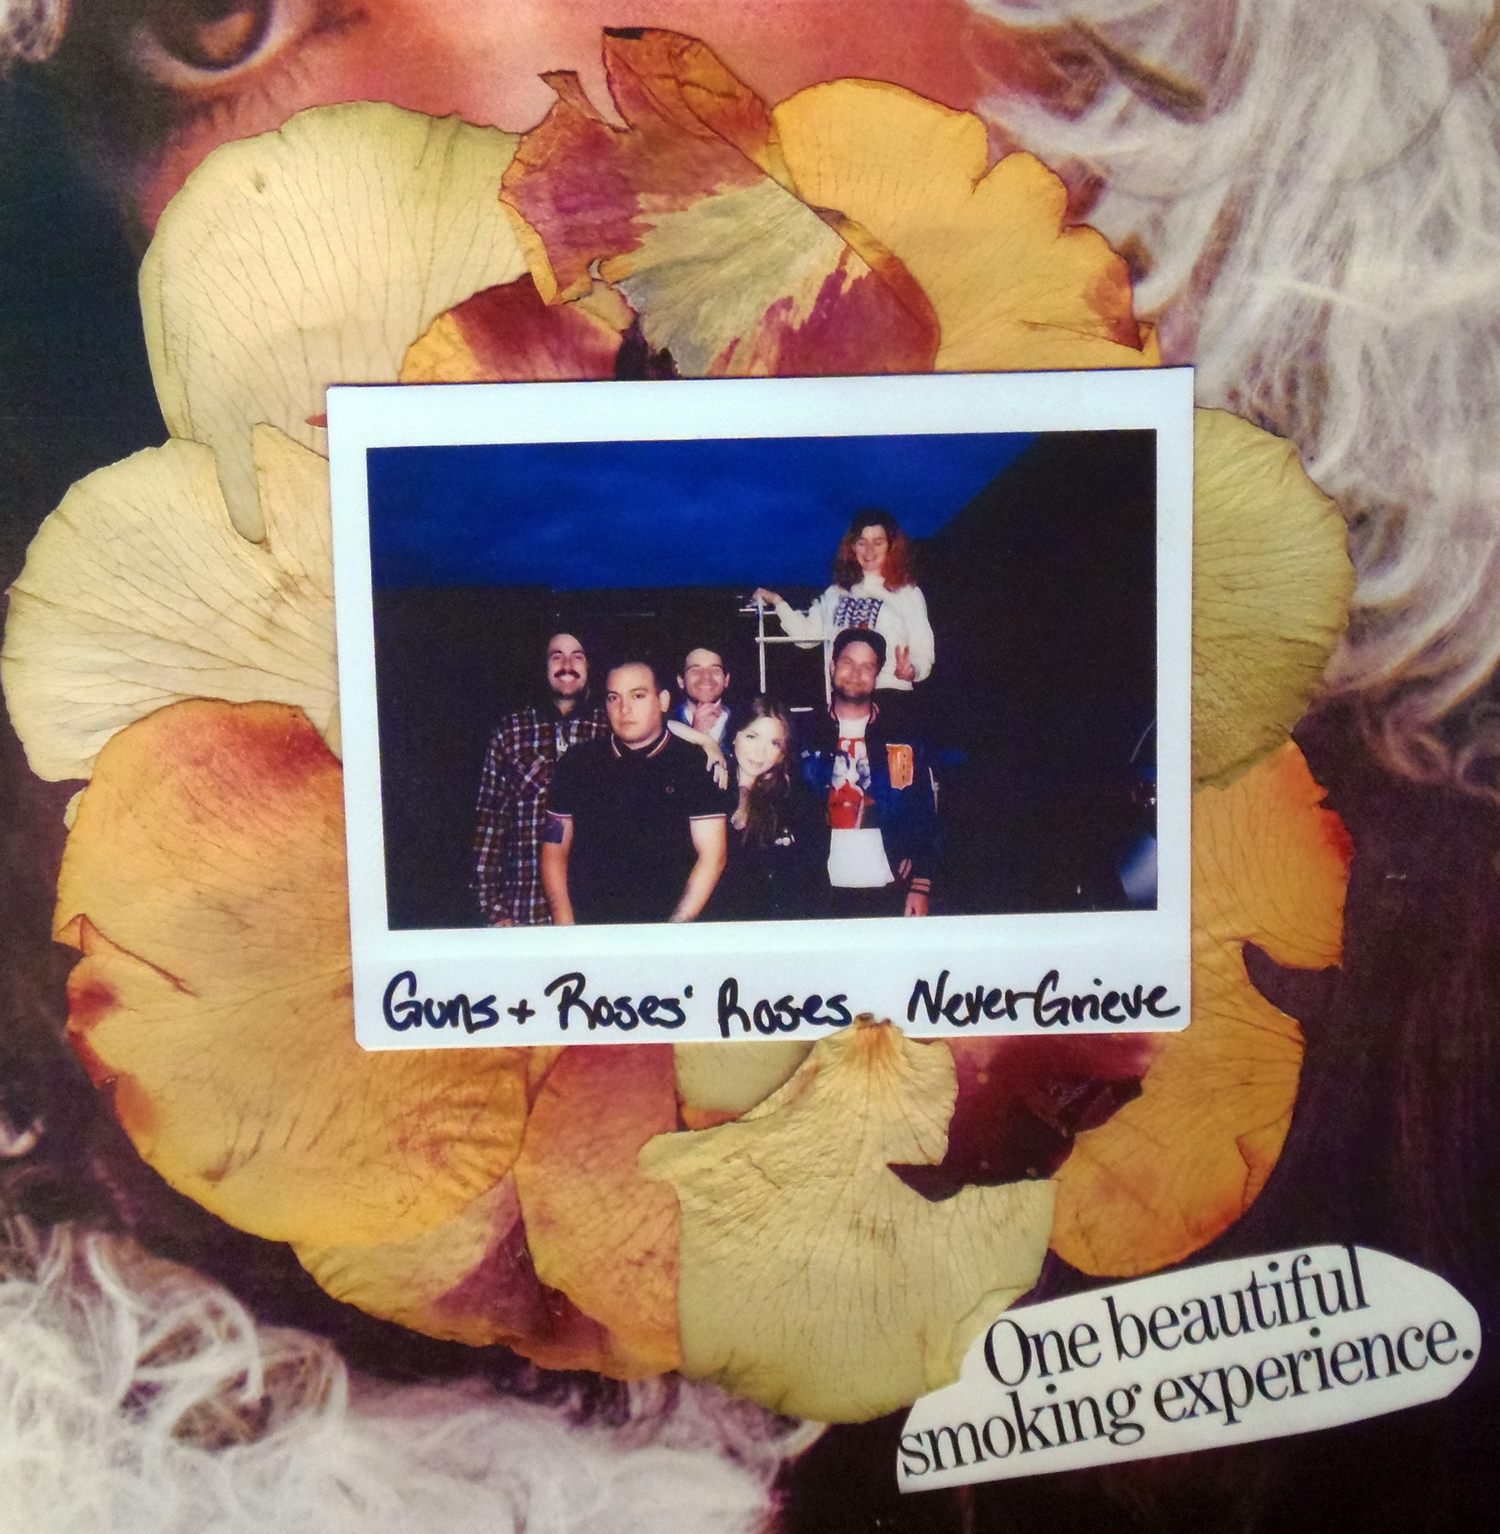 Never Betters/Grievances joint release - Guns and Roses' Roses.